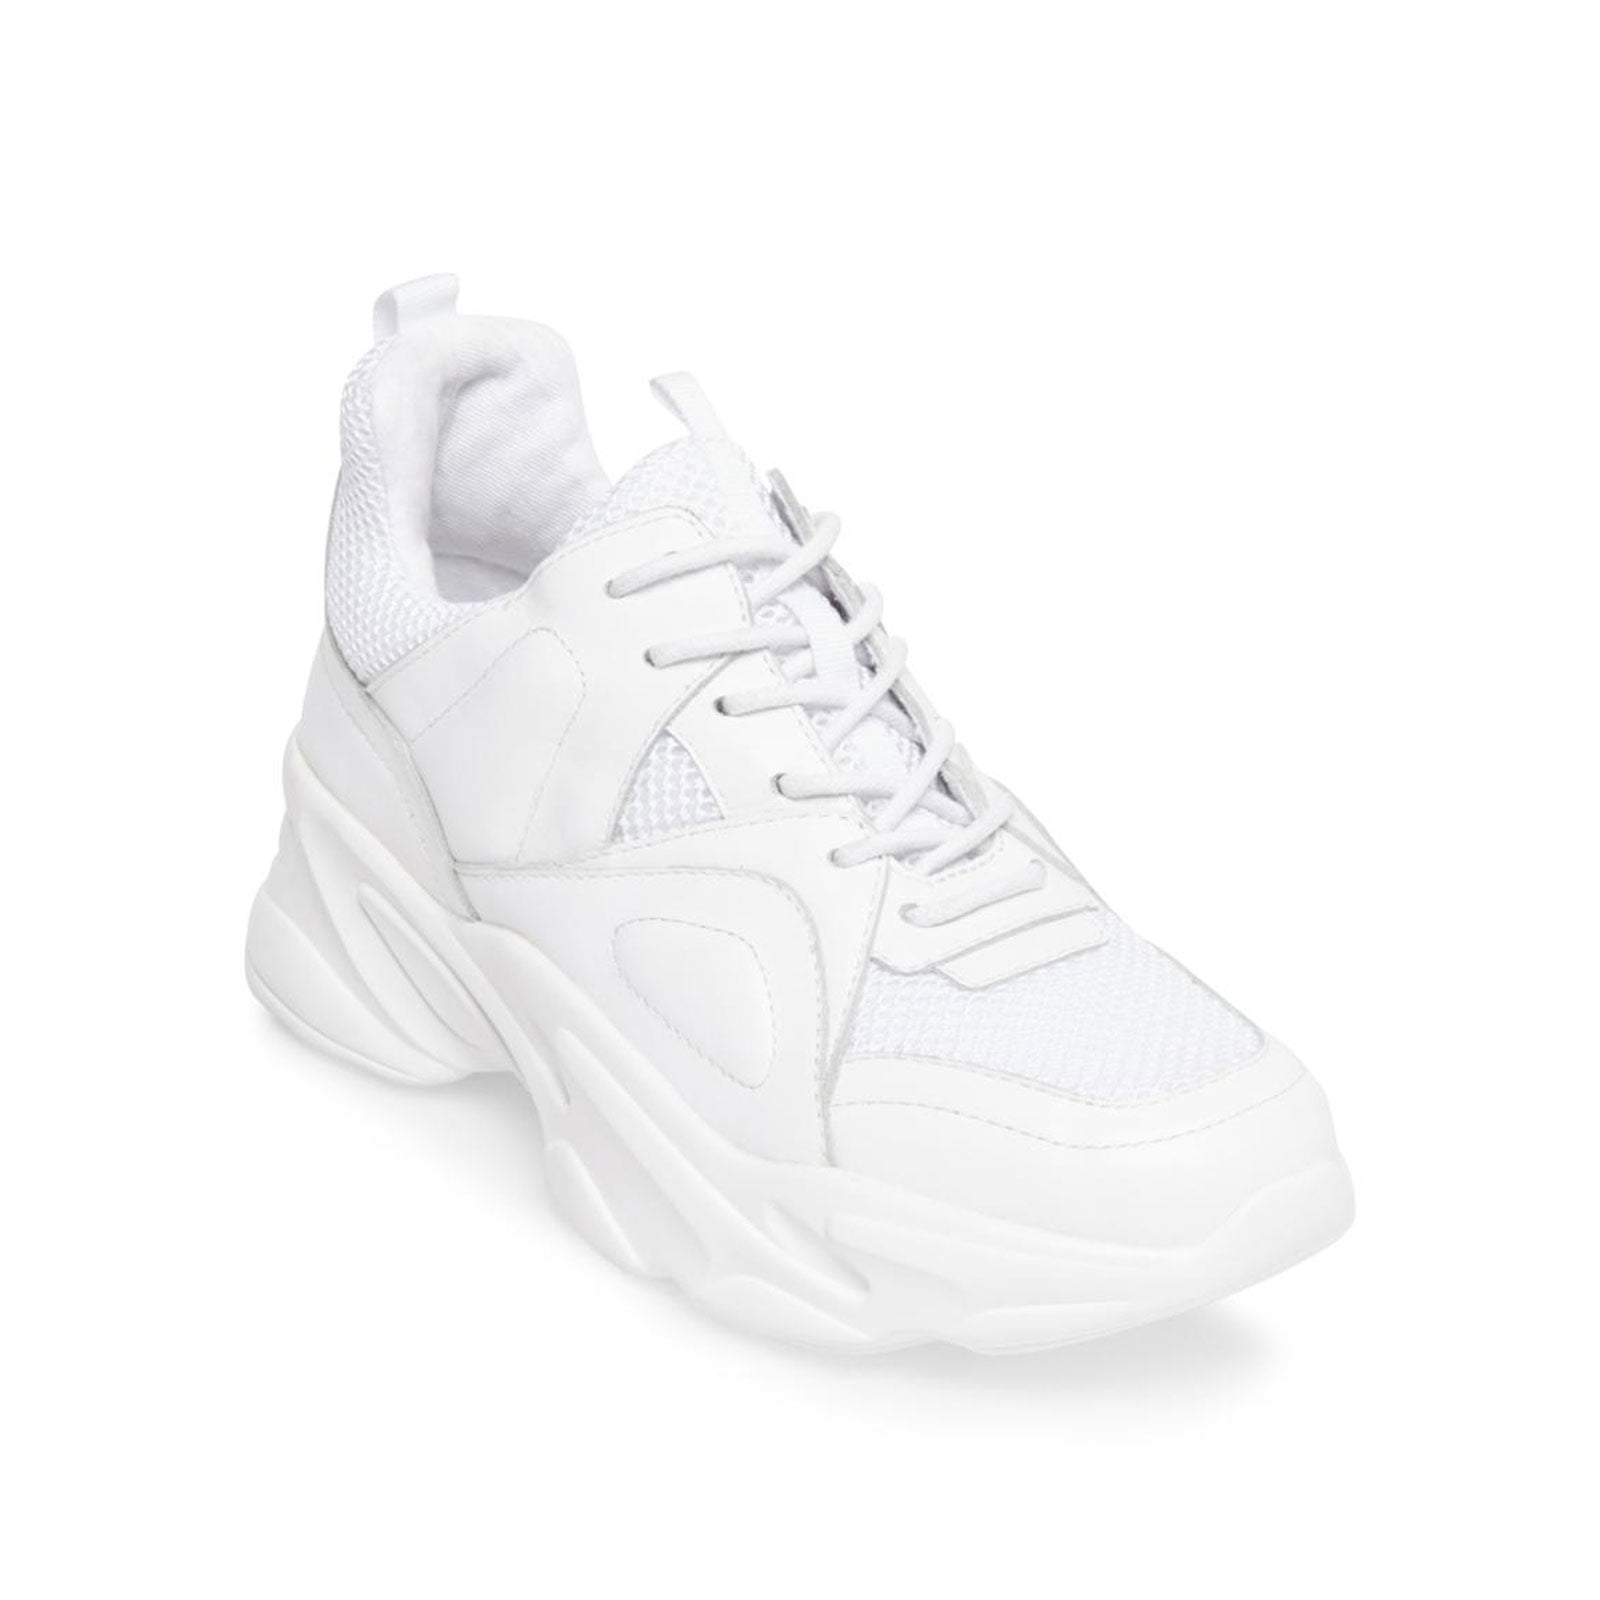 Steve Madden Movement-White